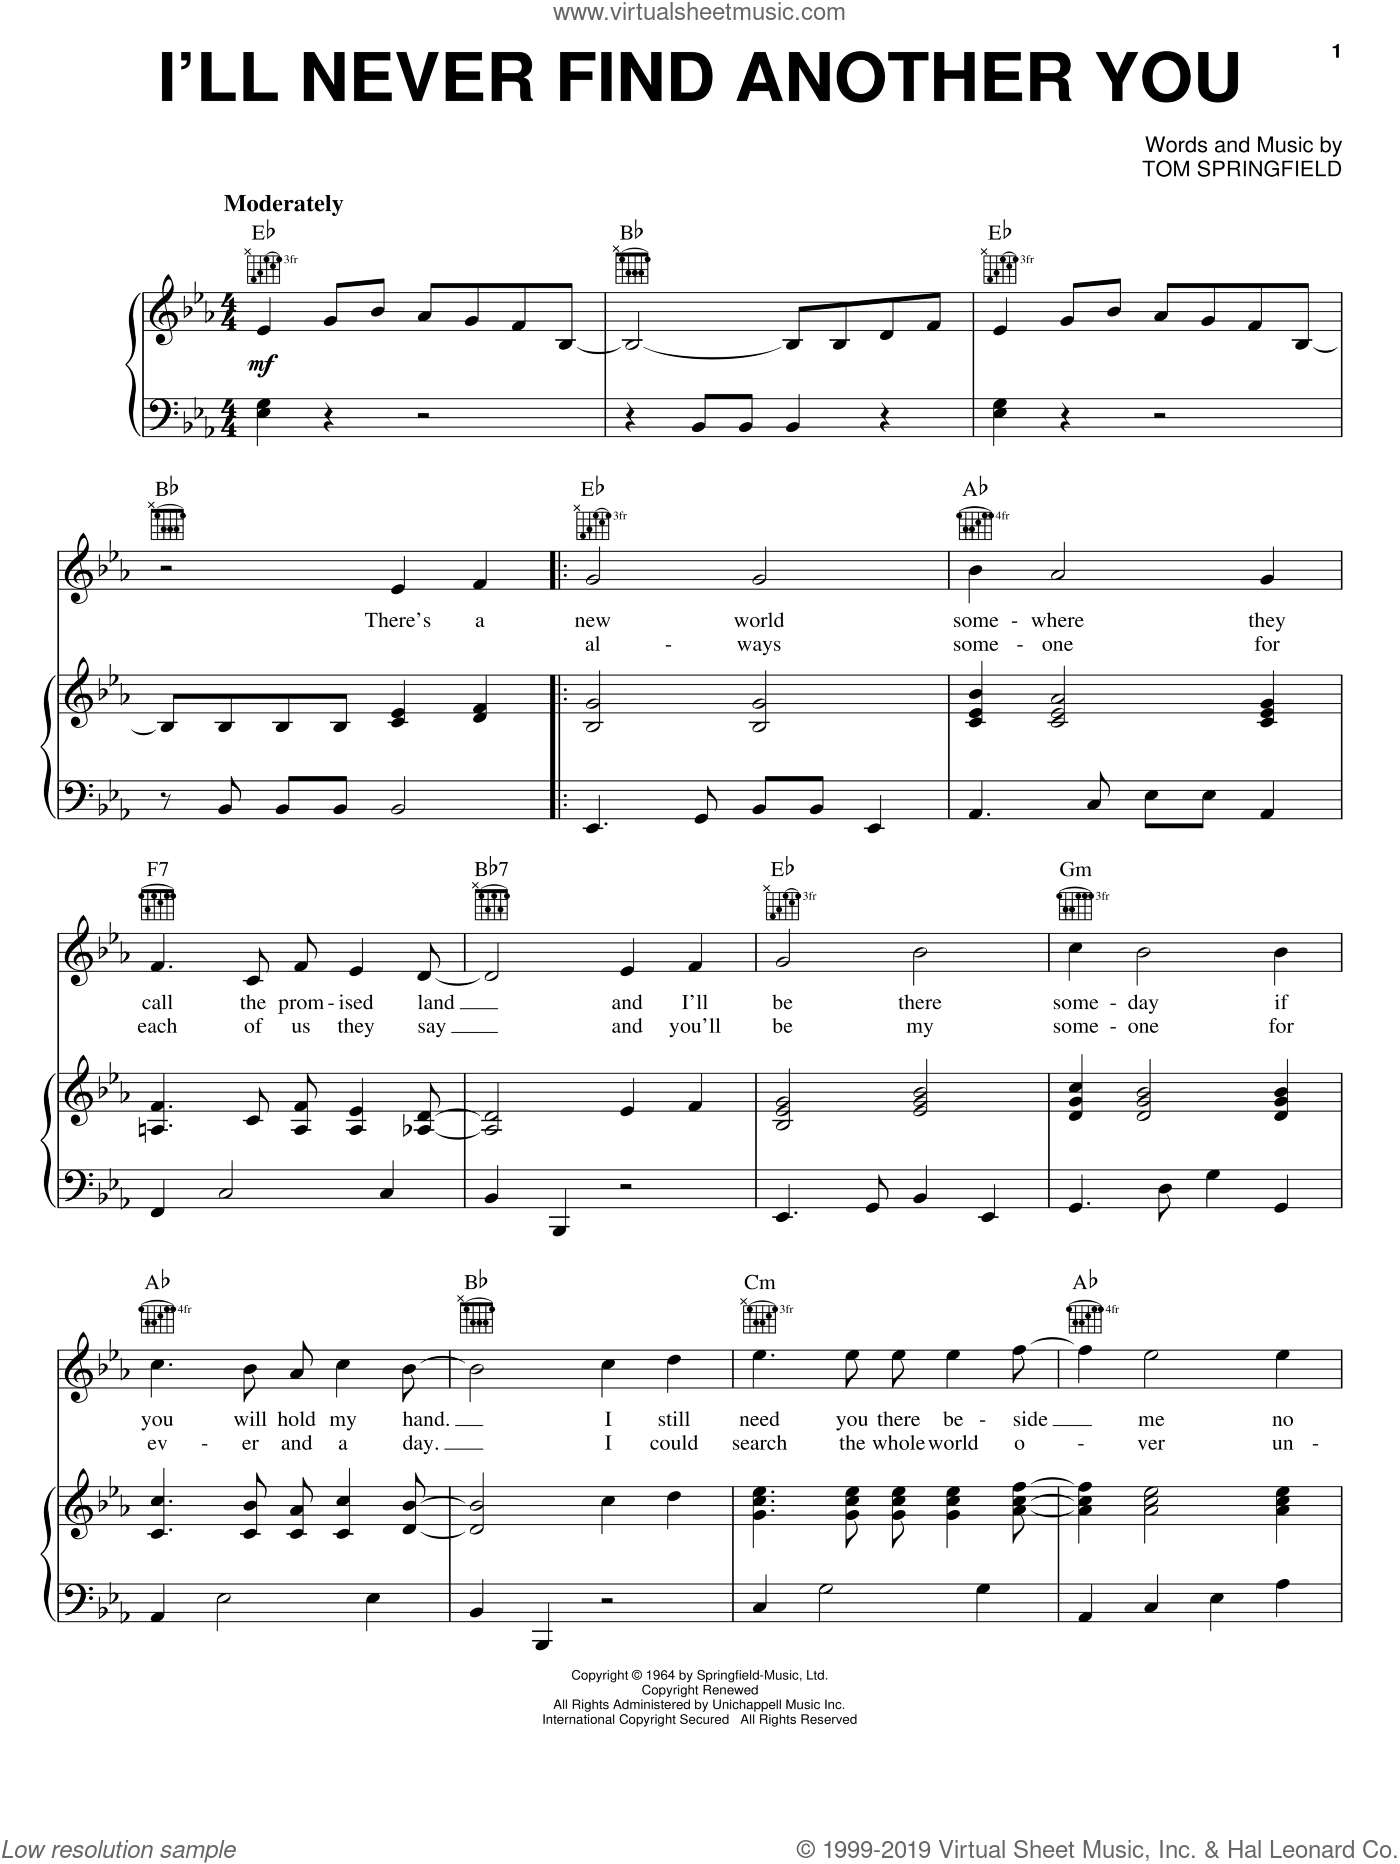 I'll Never Find Another You sheet music for voice, piano or guitar by Tom Springfield